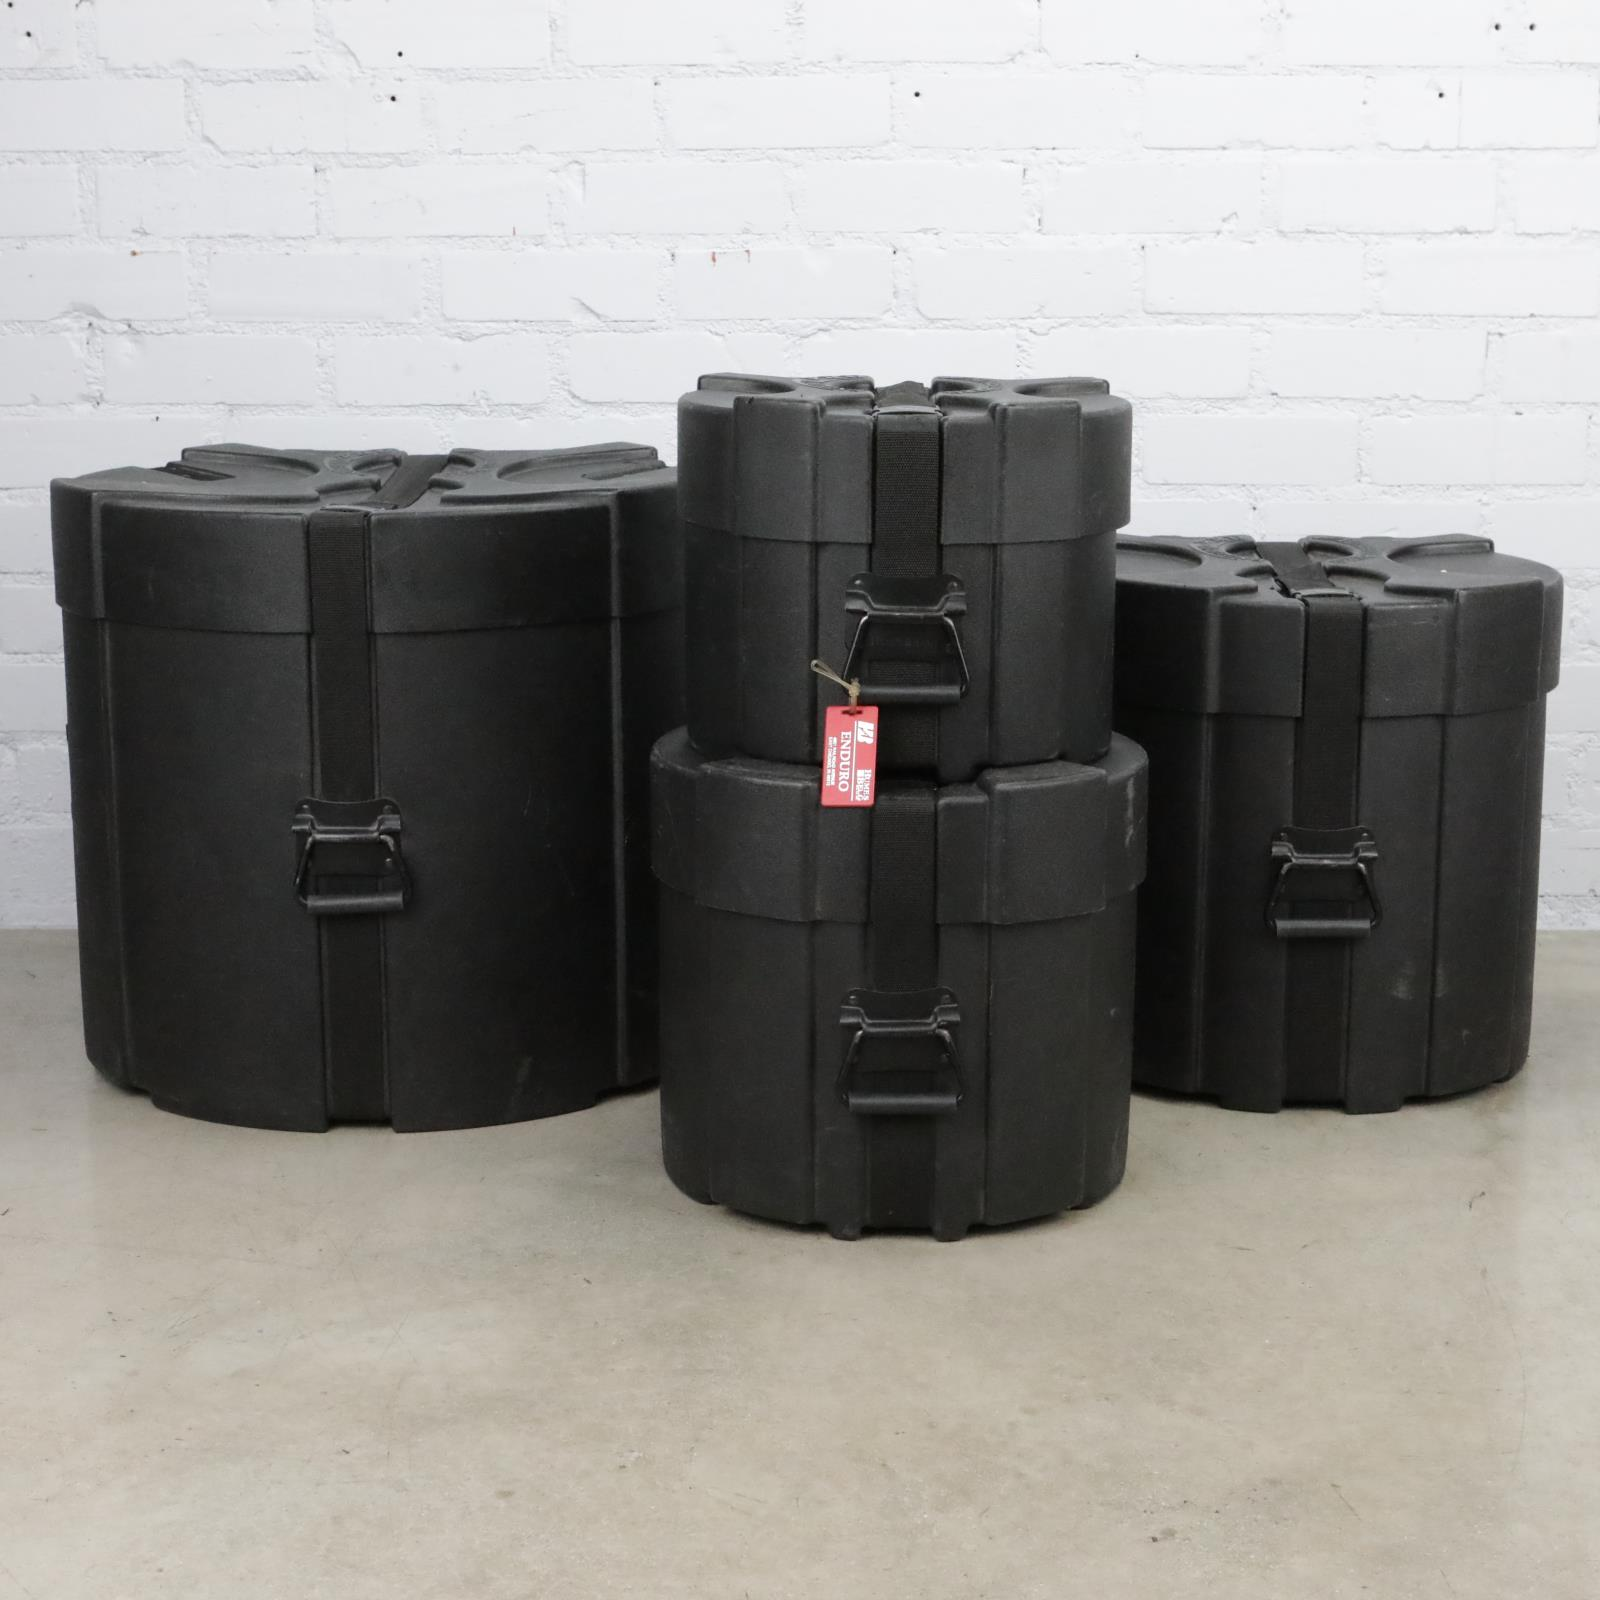 "Humes & Berg Enduro Pro Foam Lined 12"" 14"" 16"" 22"" Drum Hard Shell Cases #41227"